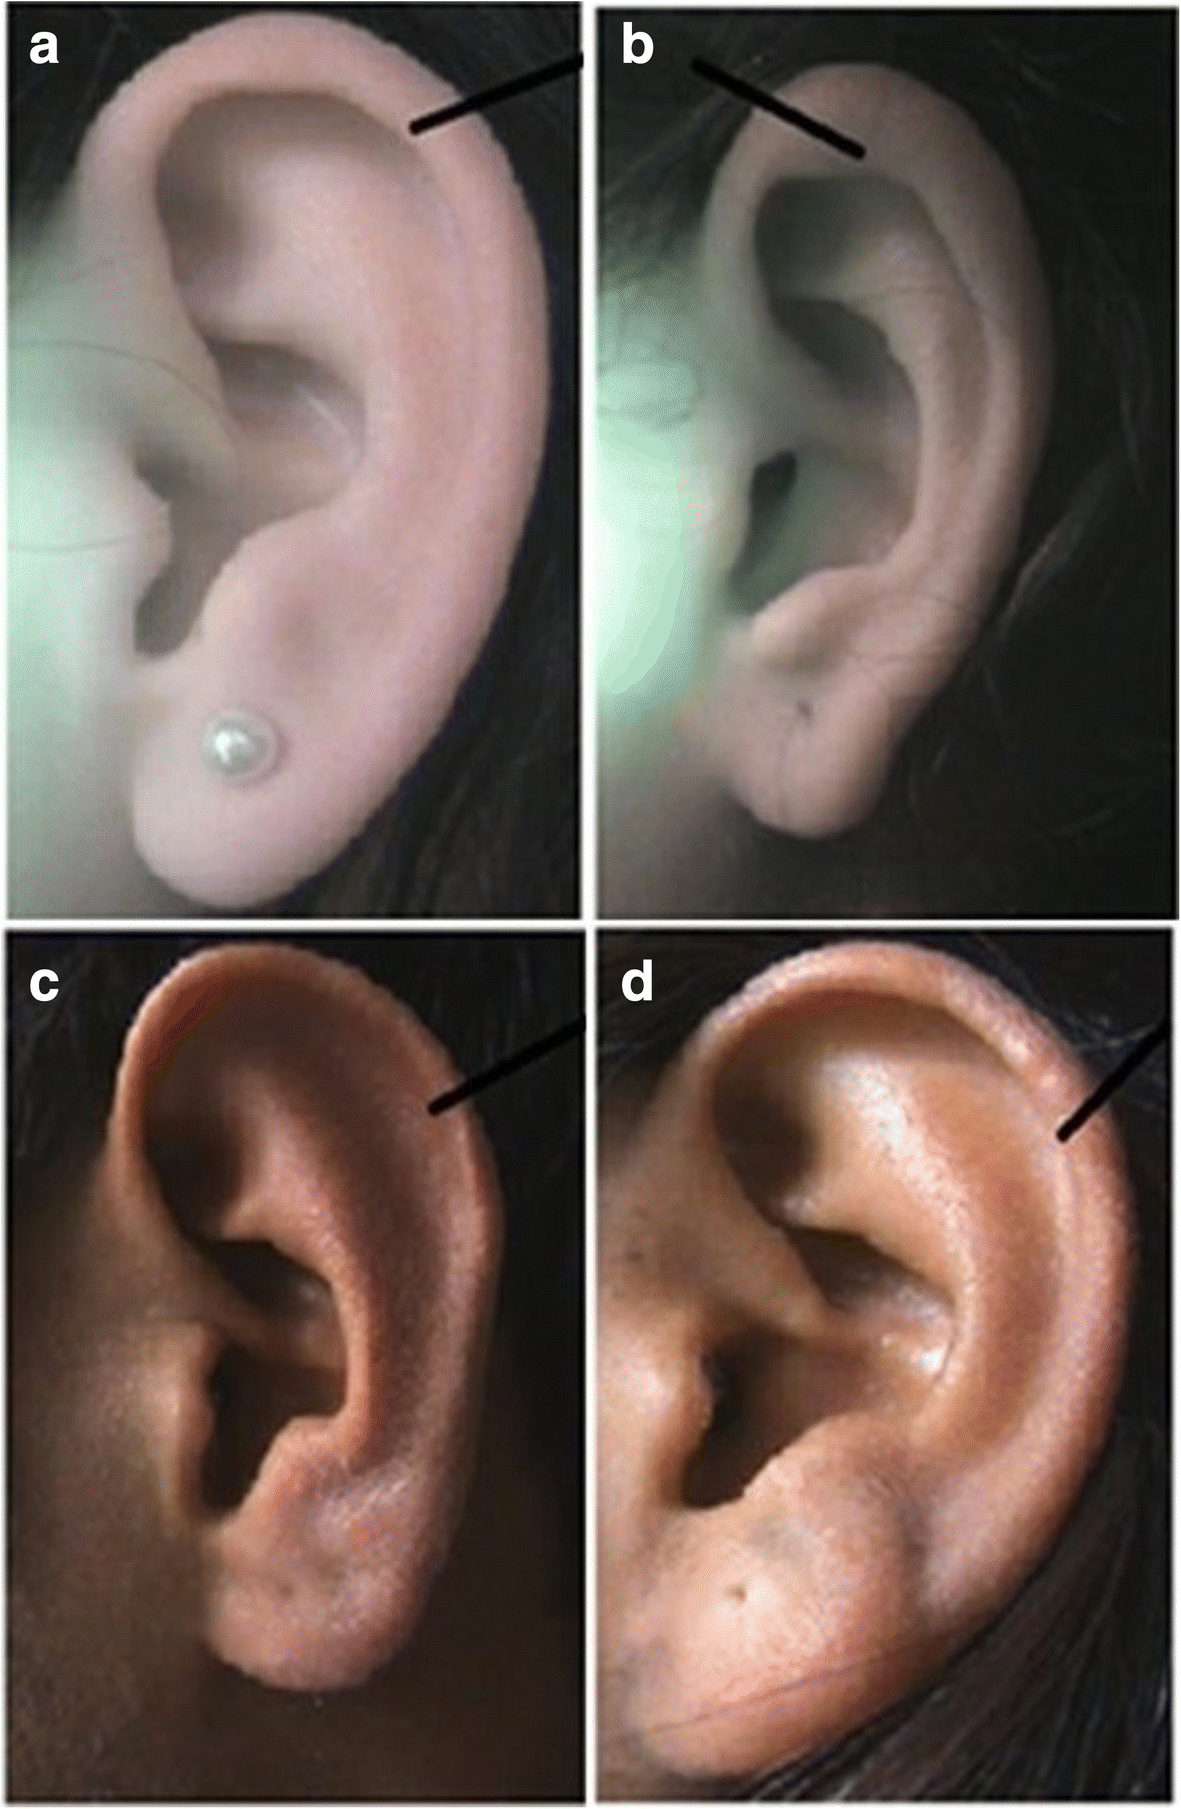 A study of morphological variations of the human ear for its